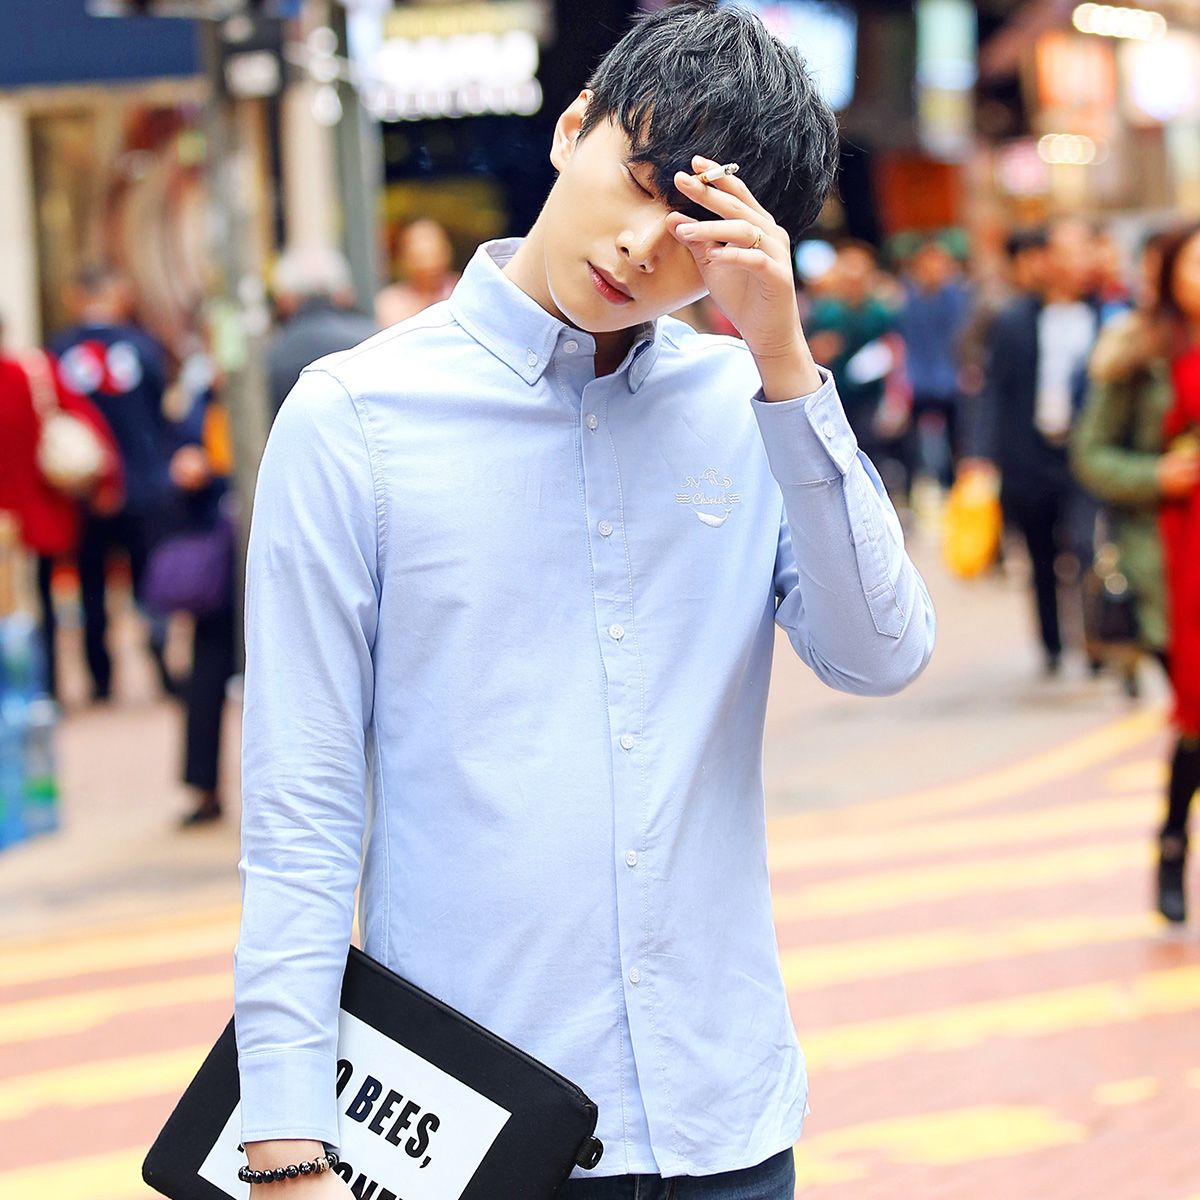 2017 autumn male long-sleeve shirt slim shirt clothes casual men's clothing shirt